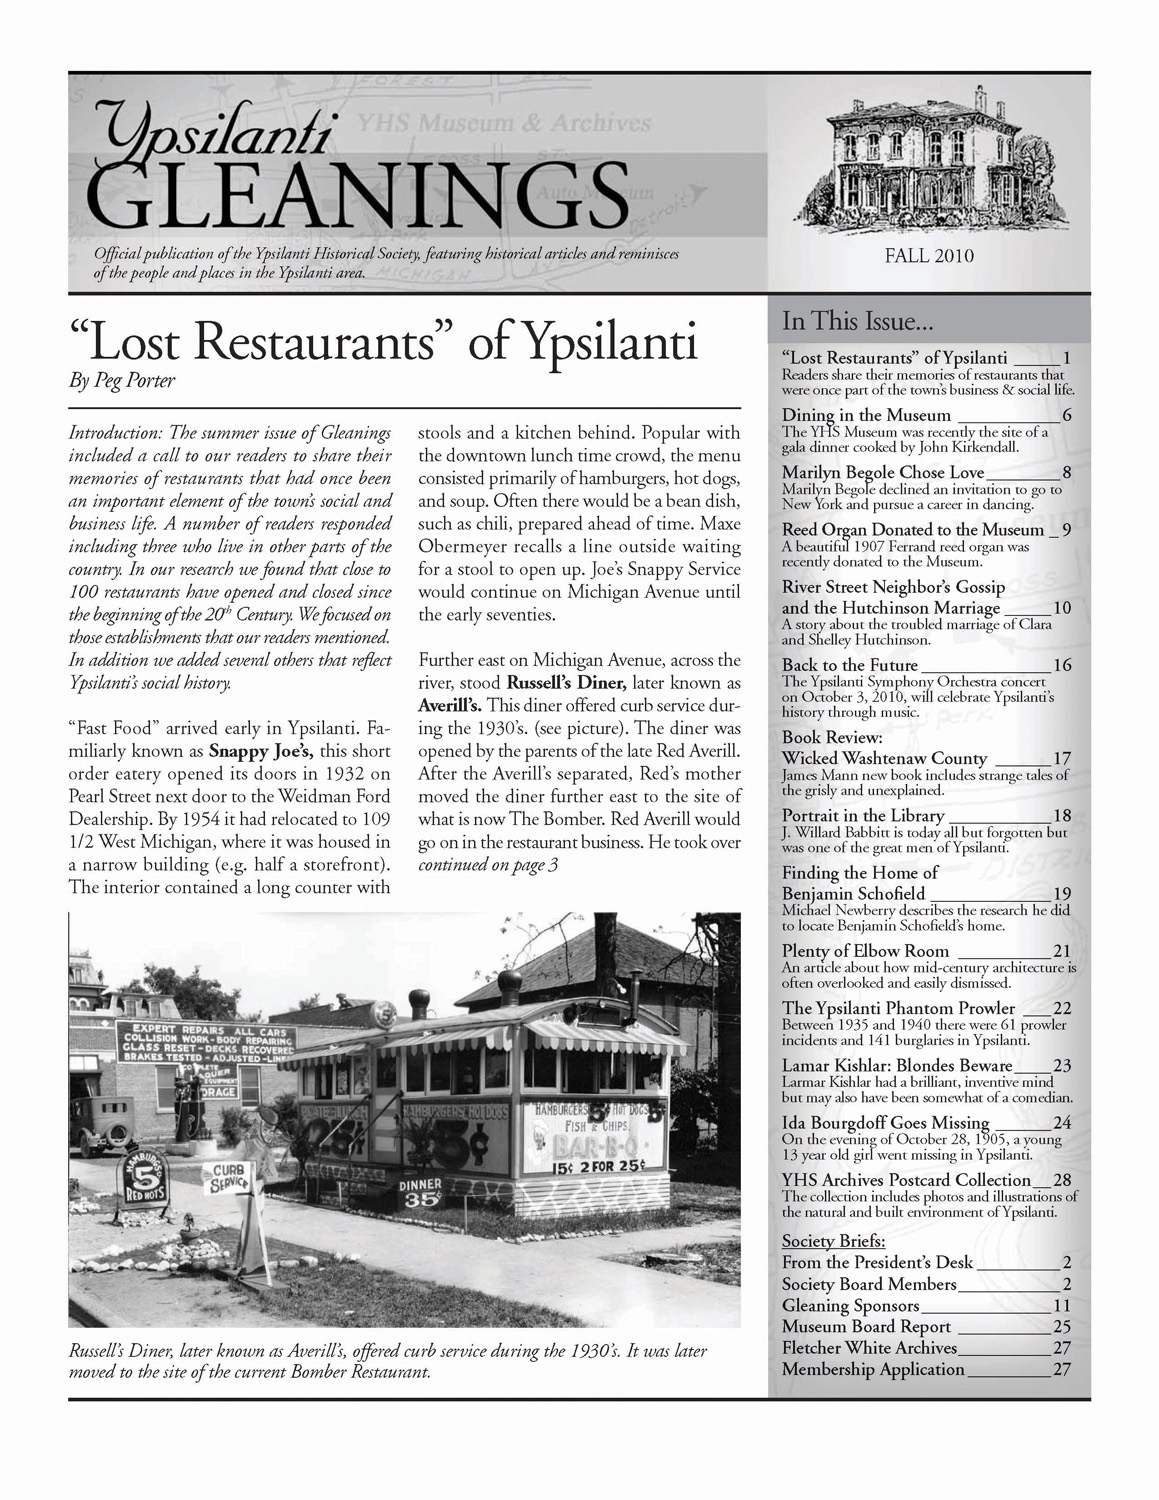 """Lost Restaurants"" of Ypsilanti image"